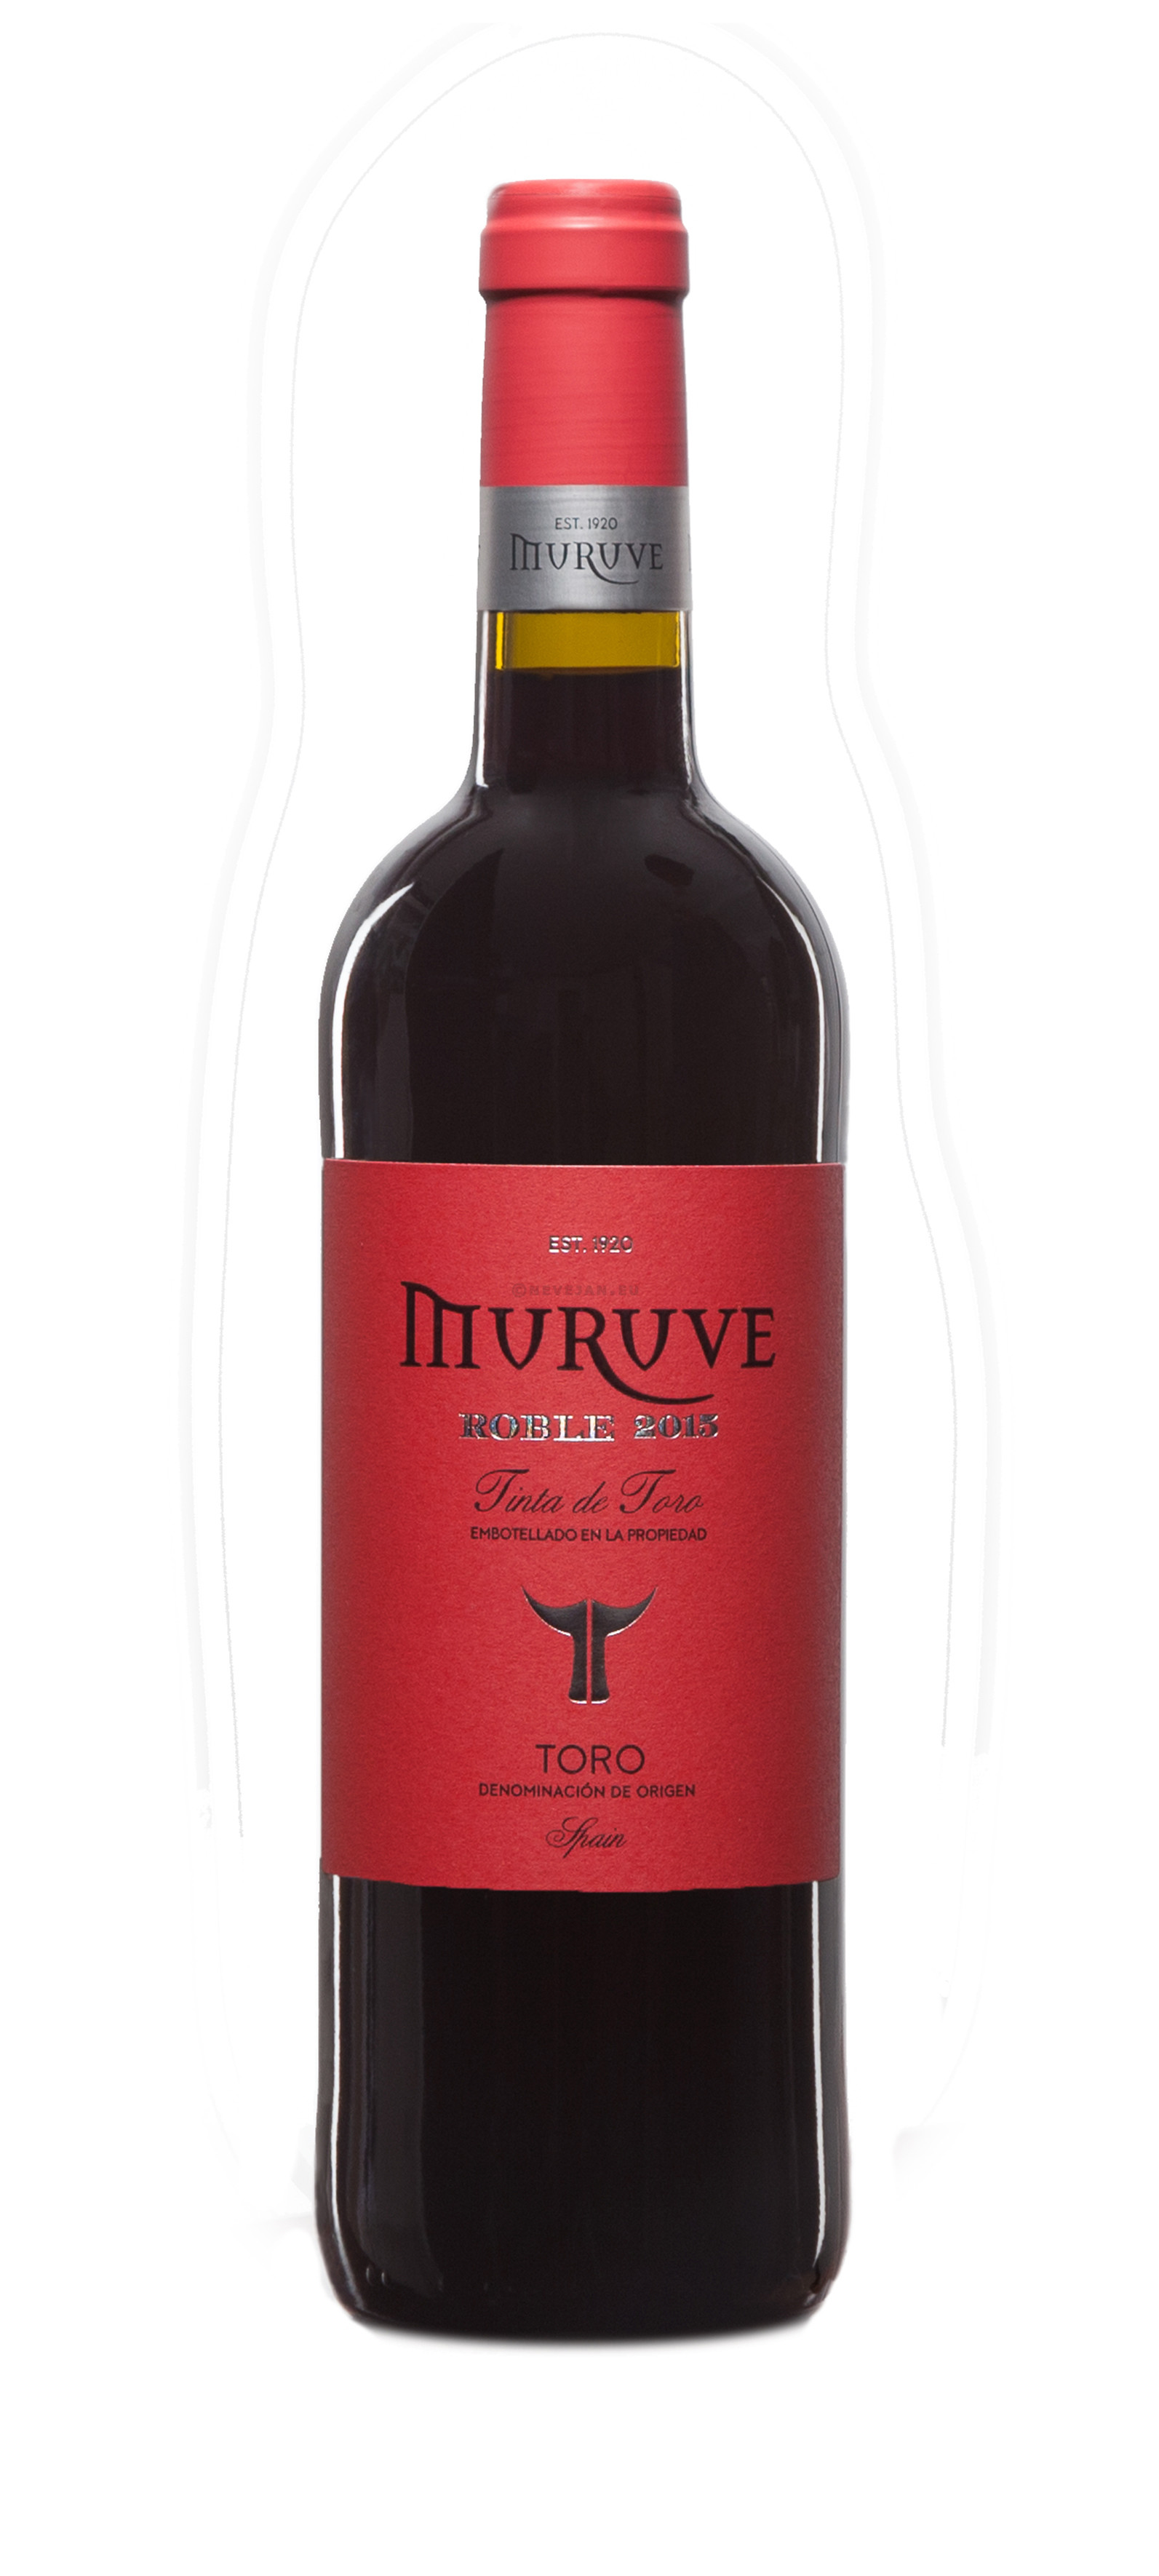 Muruve Roble 75cl 2015 Bodegas Frutos Villar - Toro - Spain